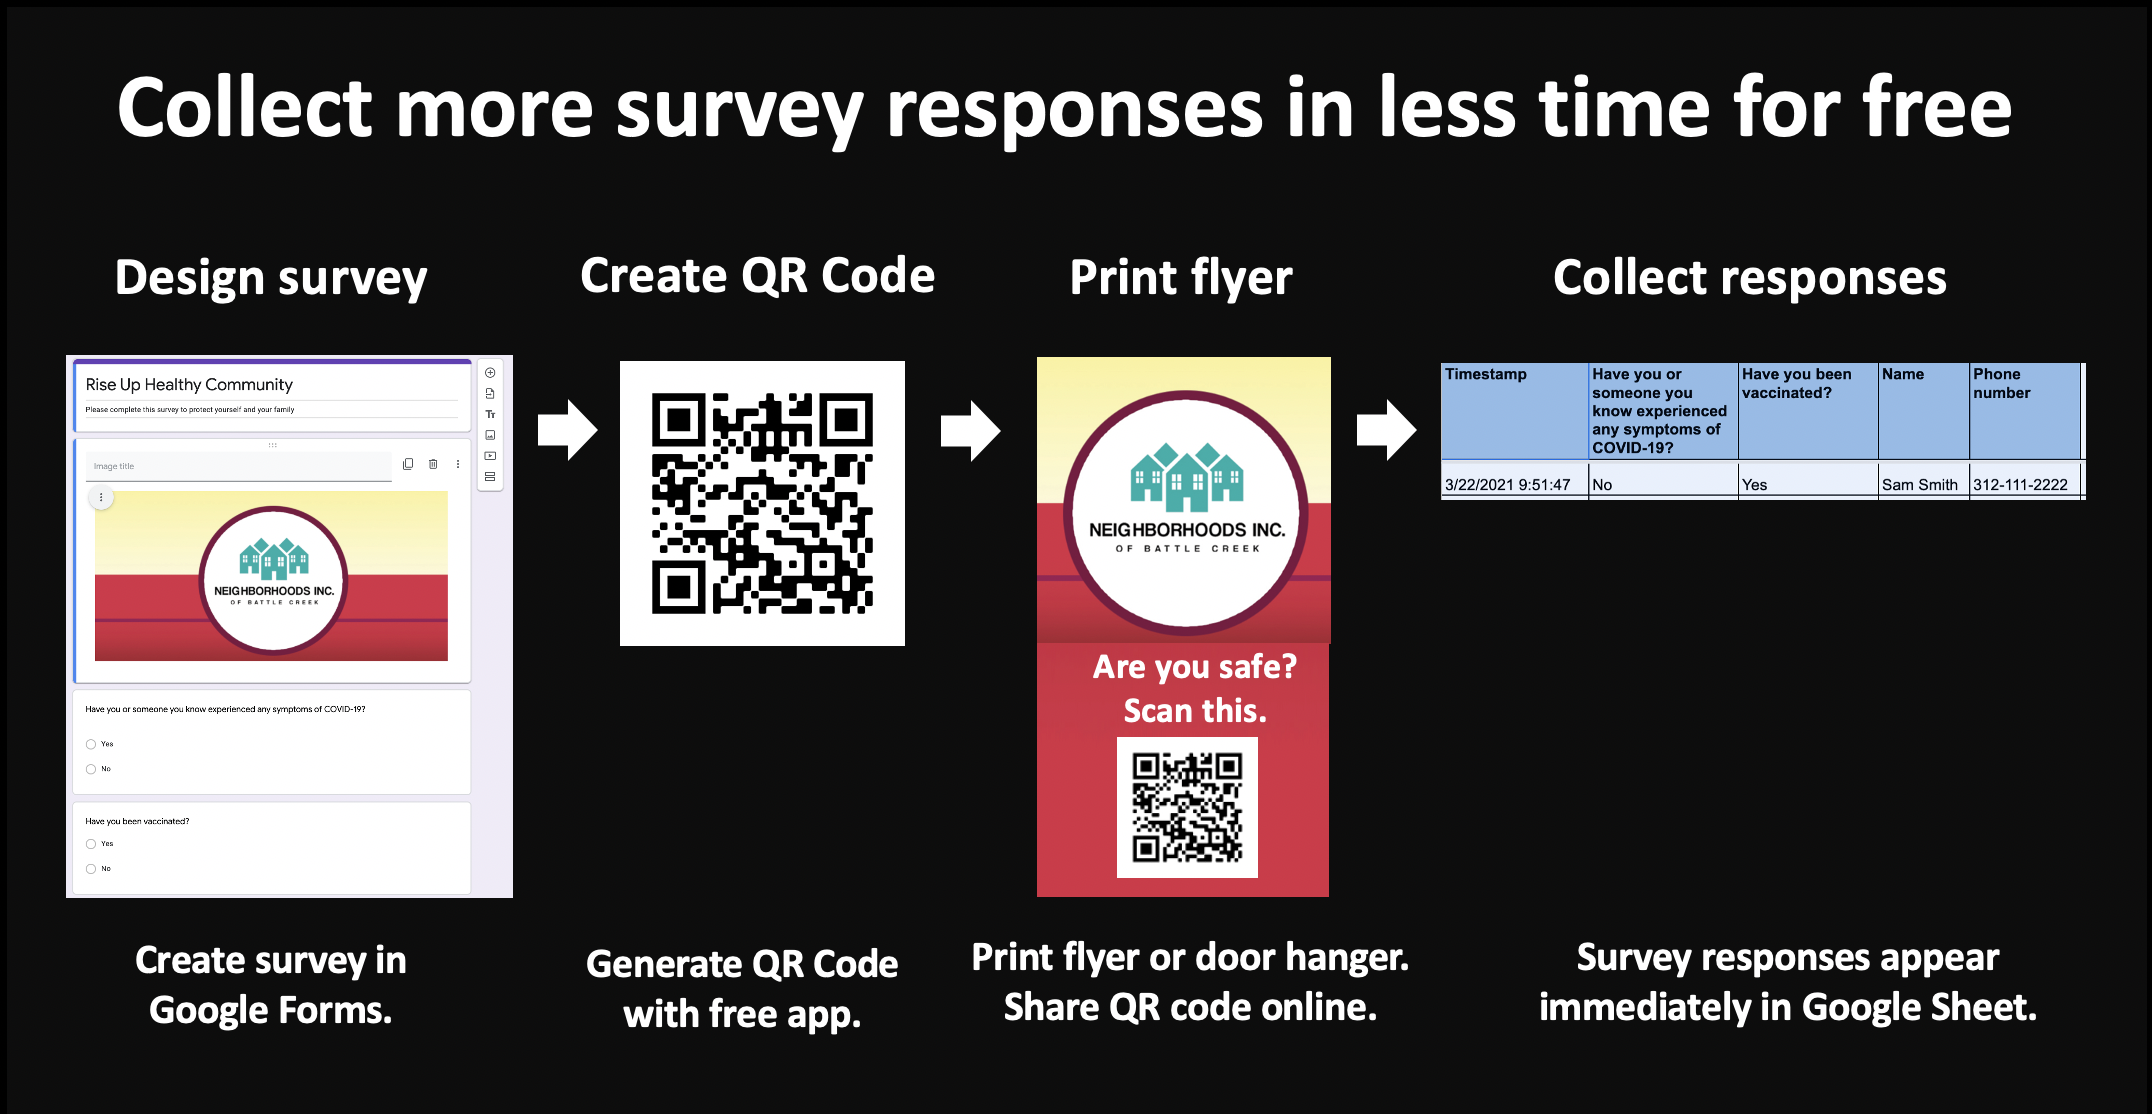 Collect more survey responses in less time for free with QR codes